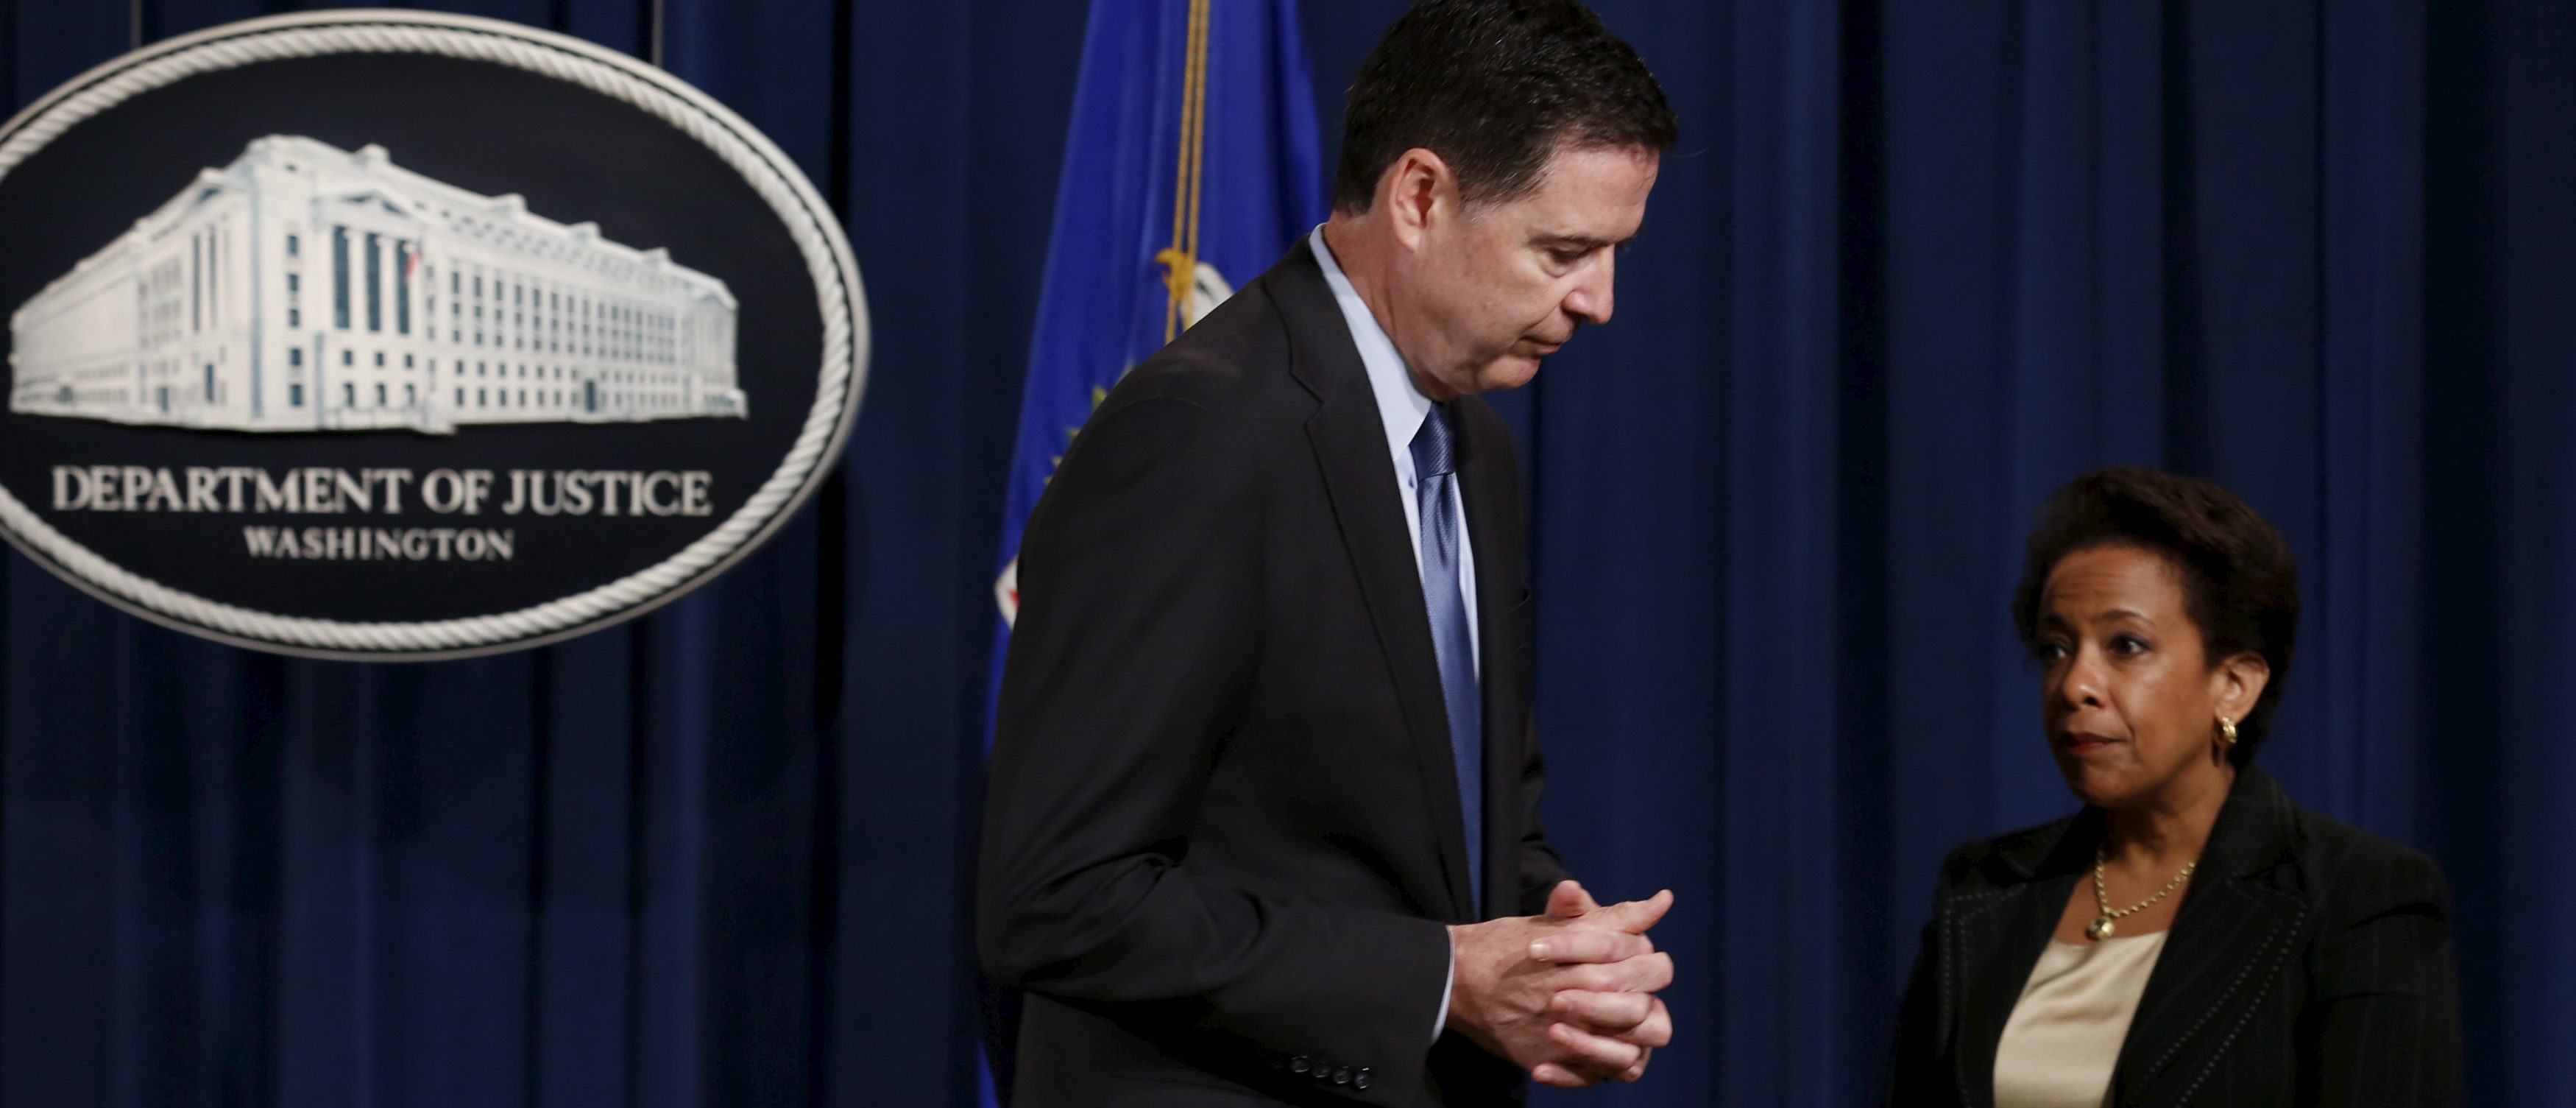 FBI Director James Comey and U.S. Attorney General Loretta Lynch attend a news conference at the Justice Department in Washington June 18, 2015. REUTERS/Yuri Gripas